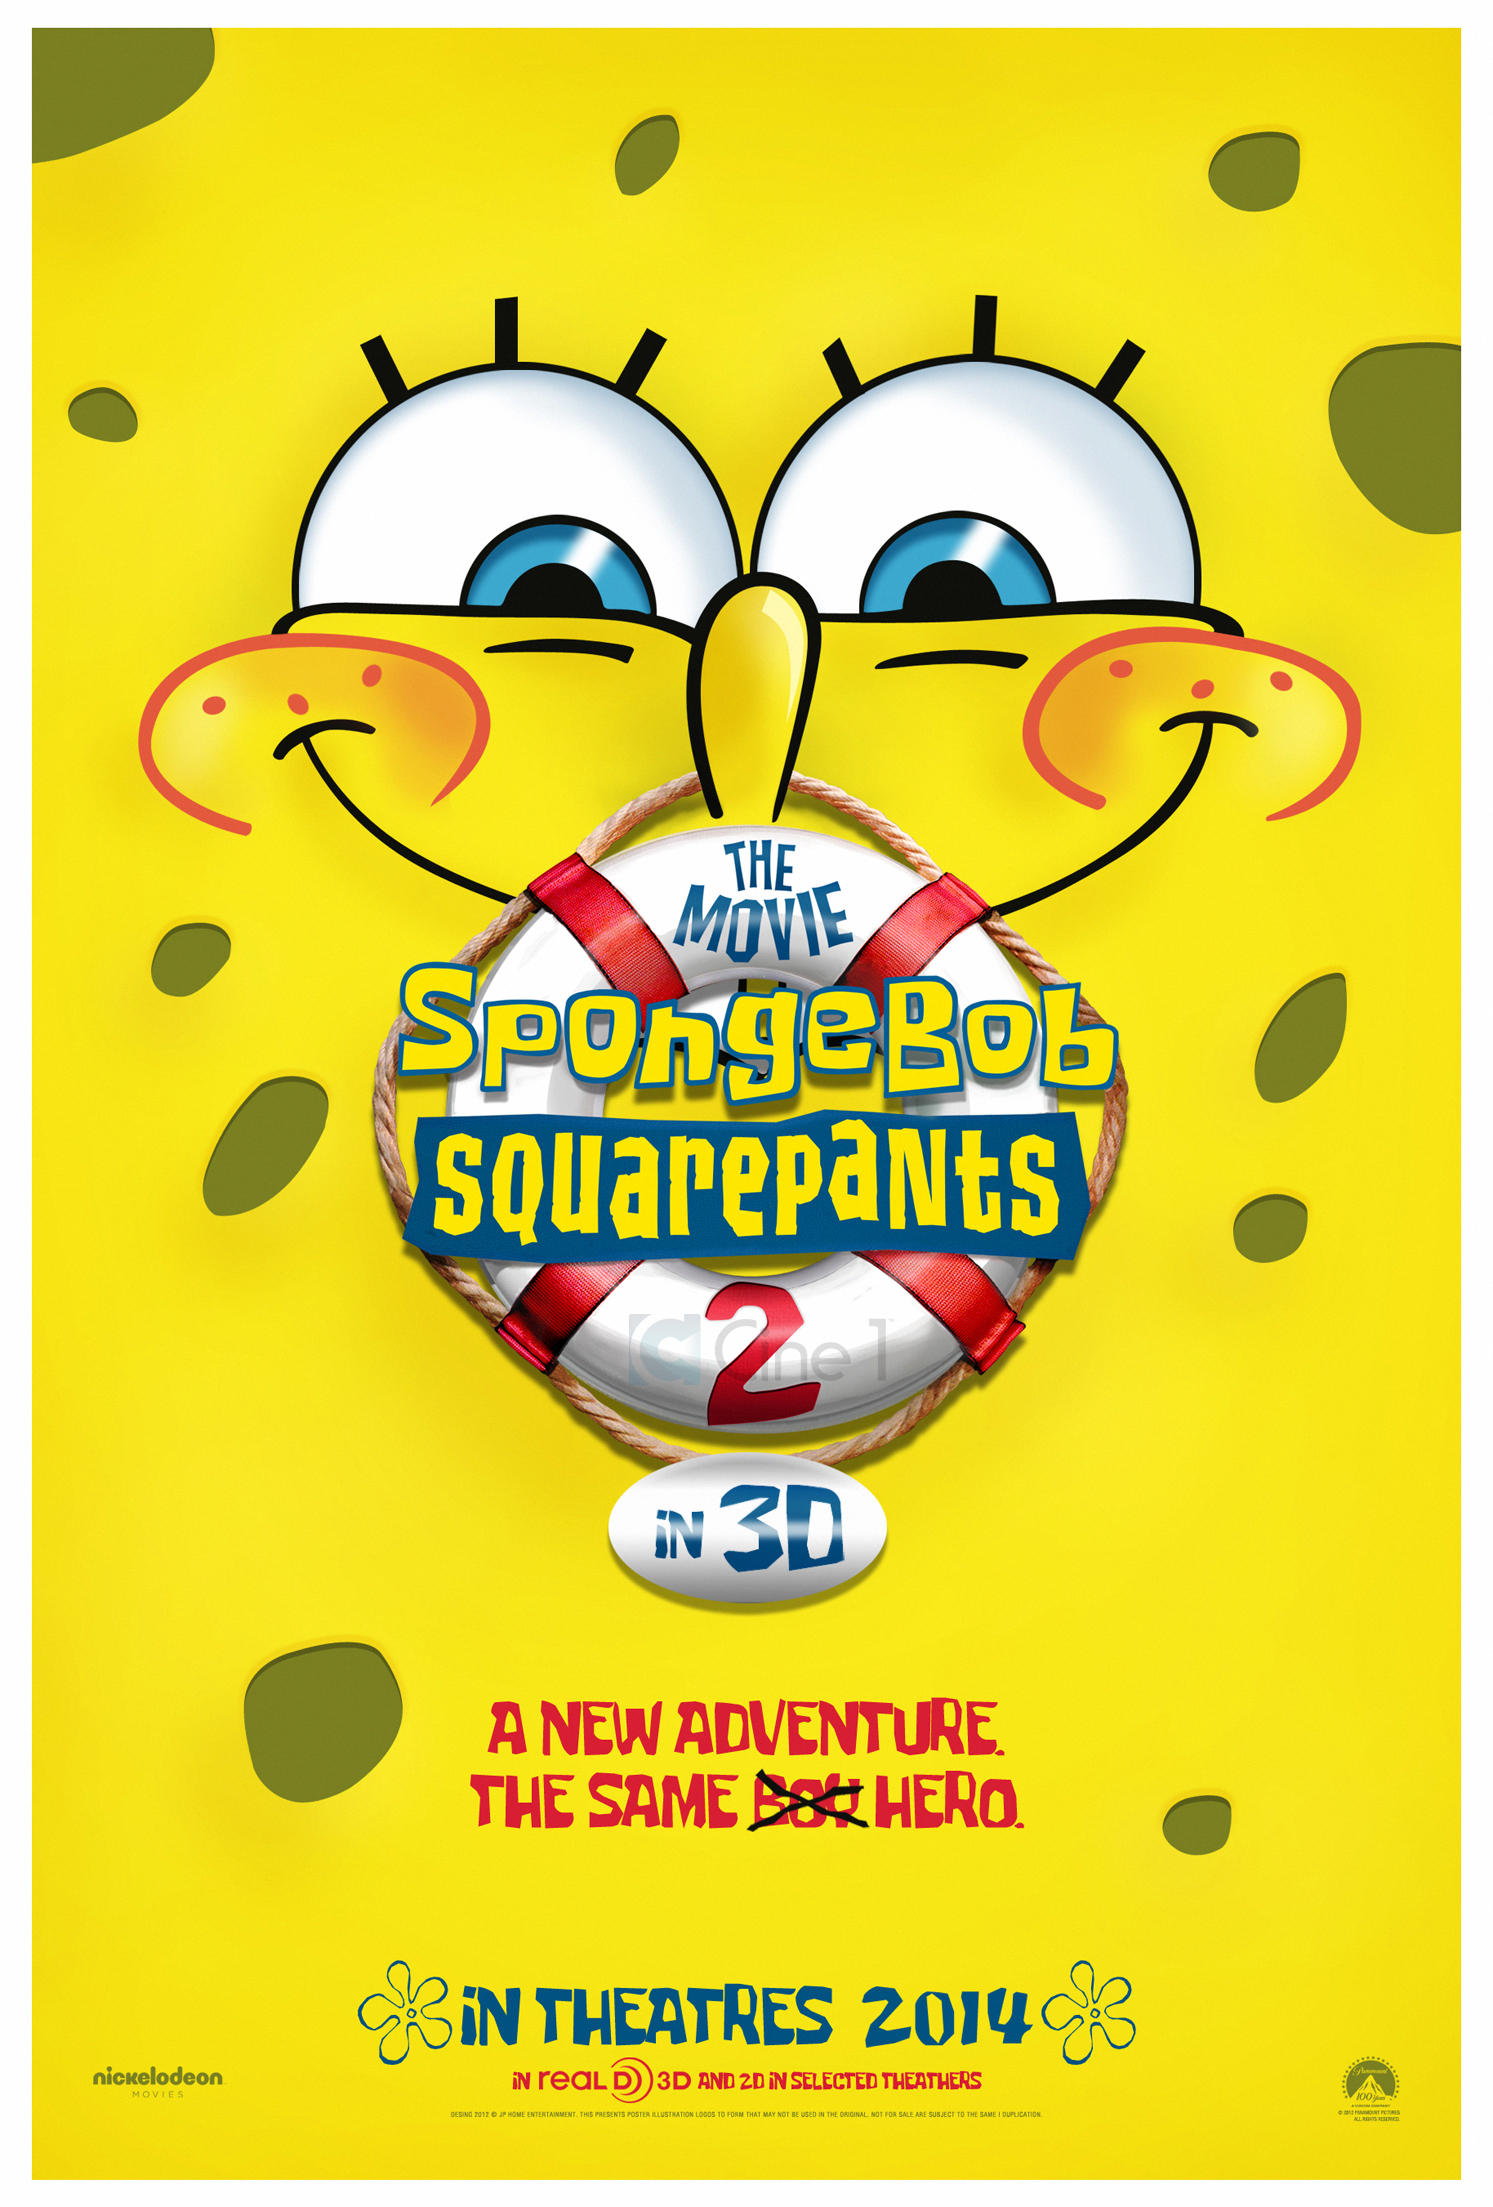 SpongeBob Squarepants The Movie 2 - Teaser Poster by jphomeentertainment